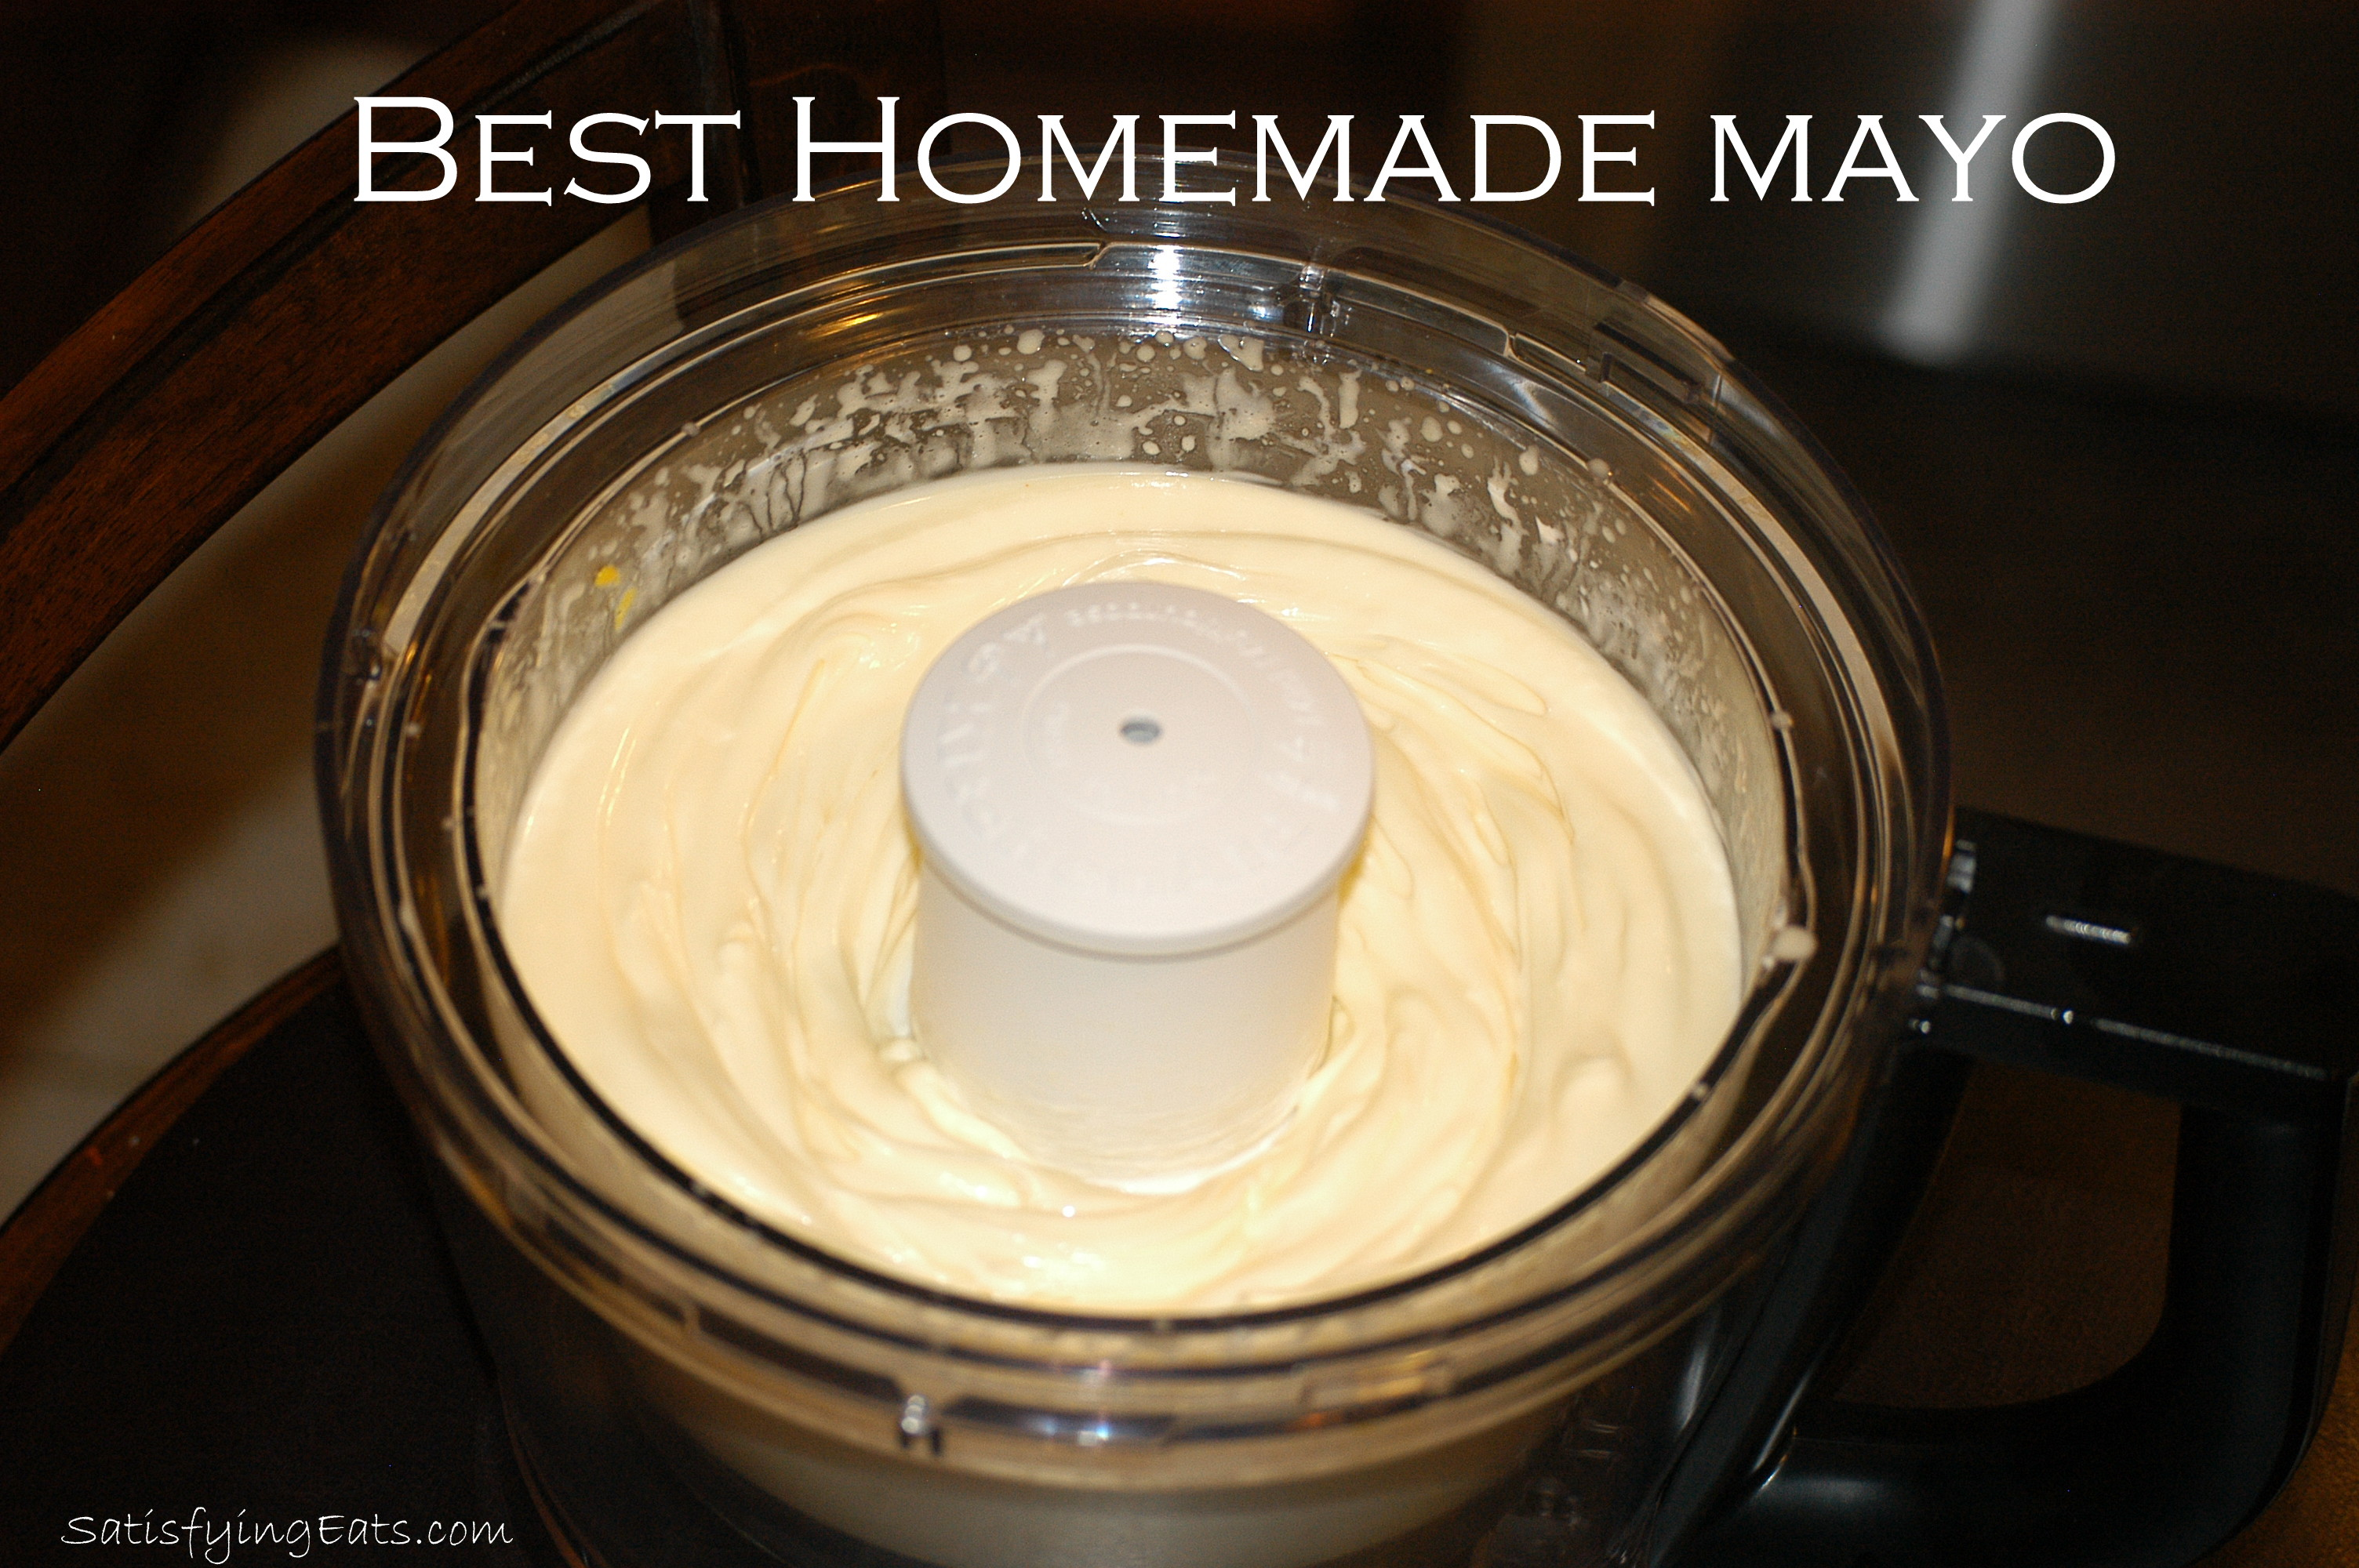 Best homemade mayo - Make best mayonnaise ...